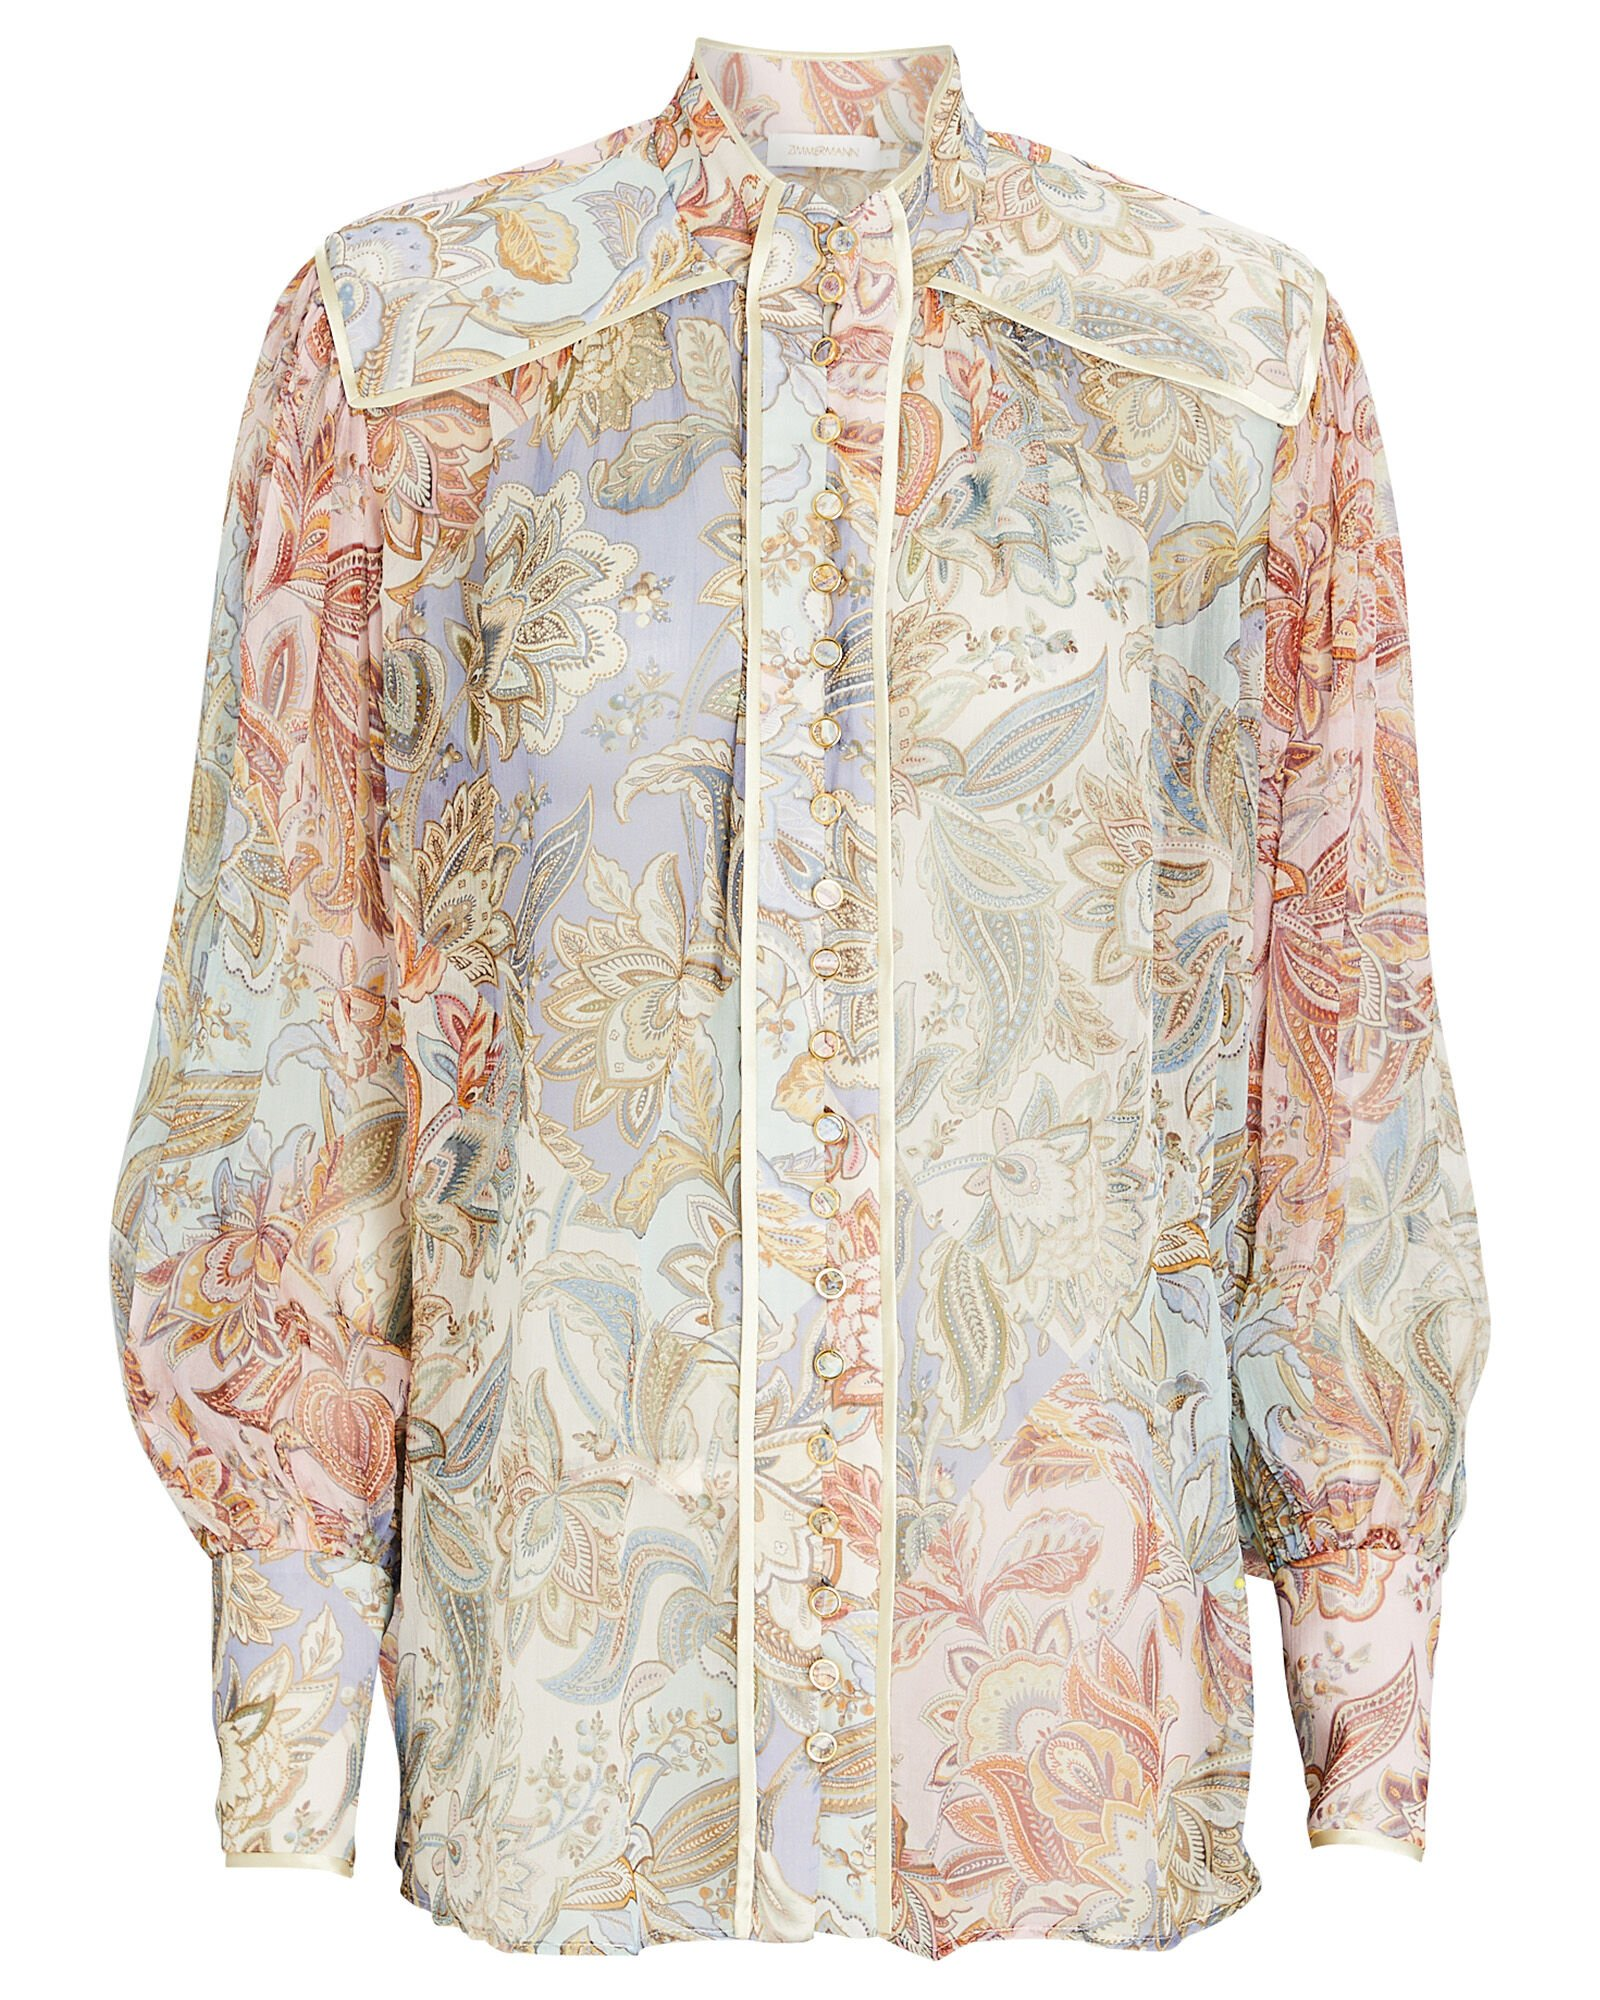 Lucky Bound Floral Paisley Blouse, LIGHT BLUE/BURGUNDY, hi-res